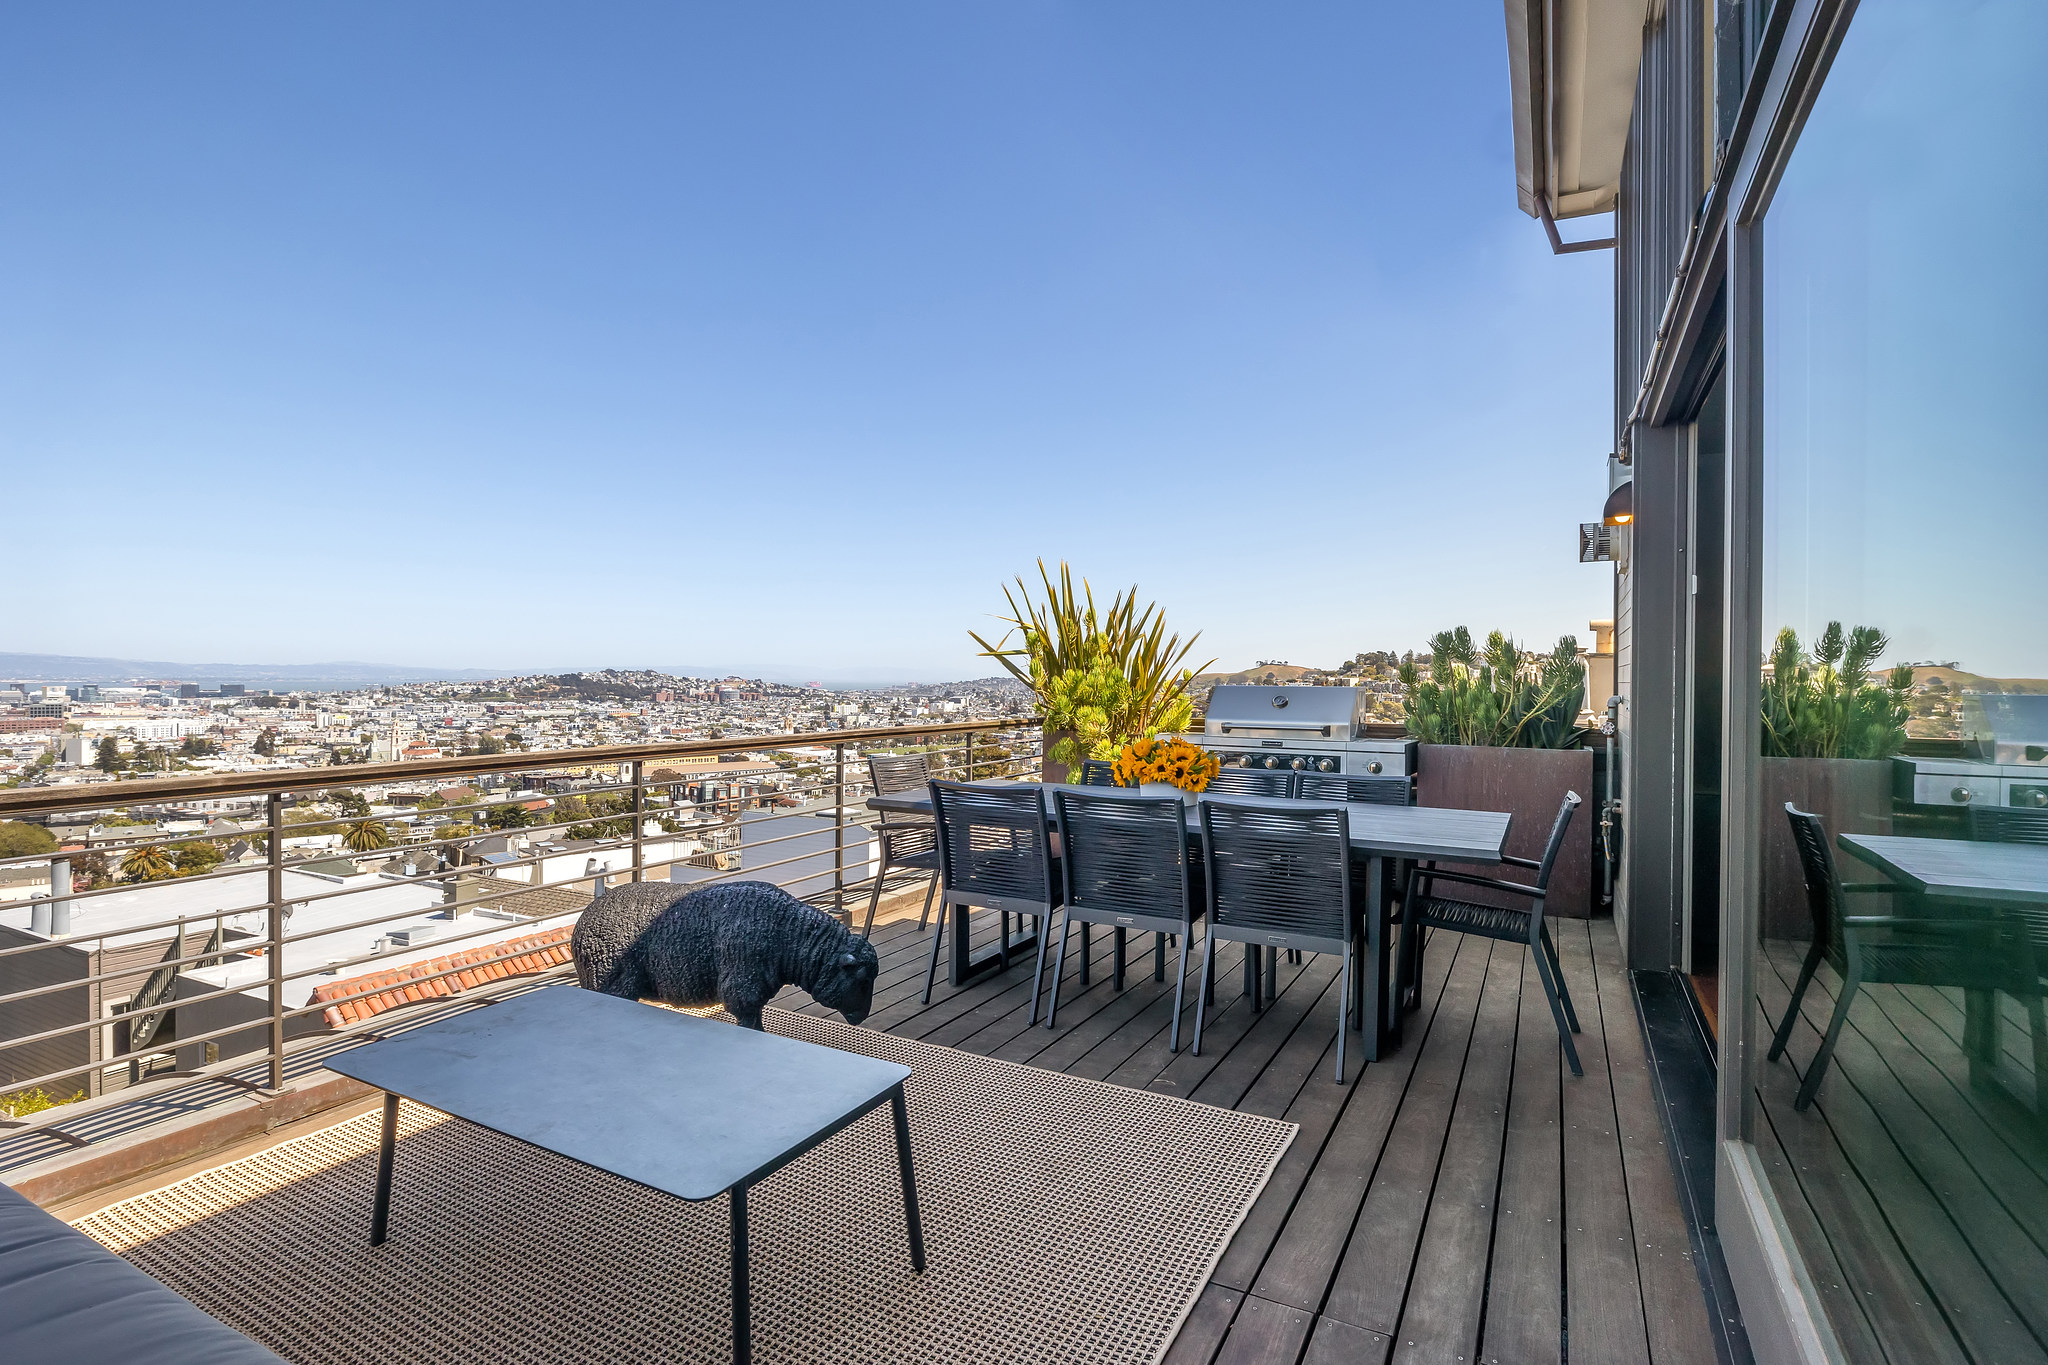 Outdoor furniture on balcony overlooking city during the day